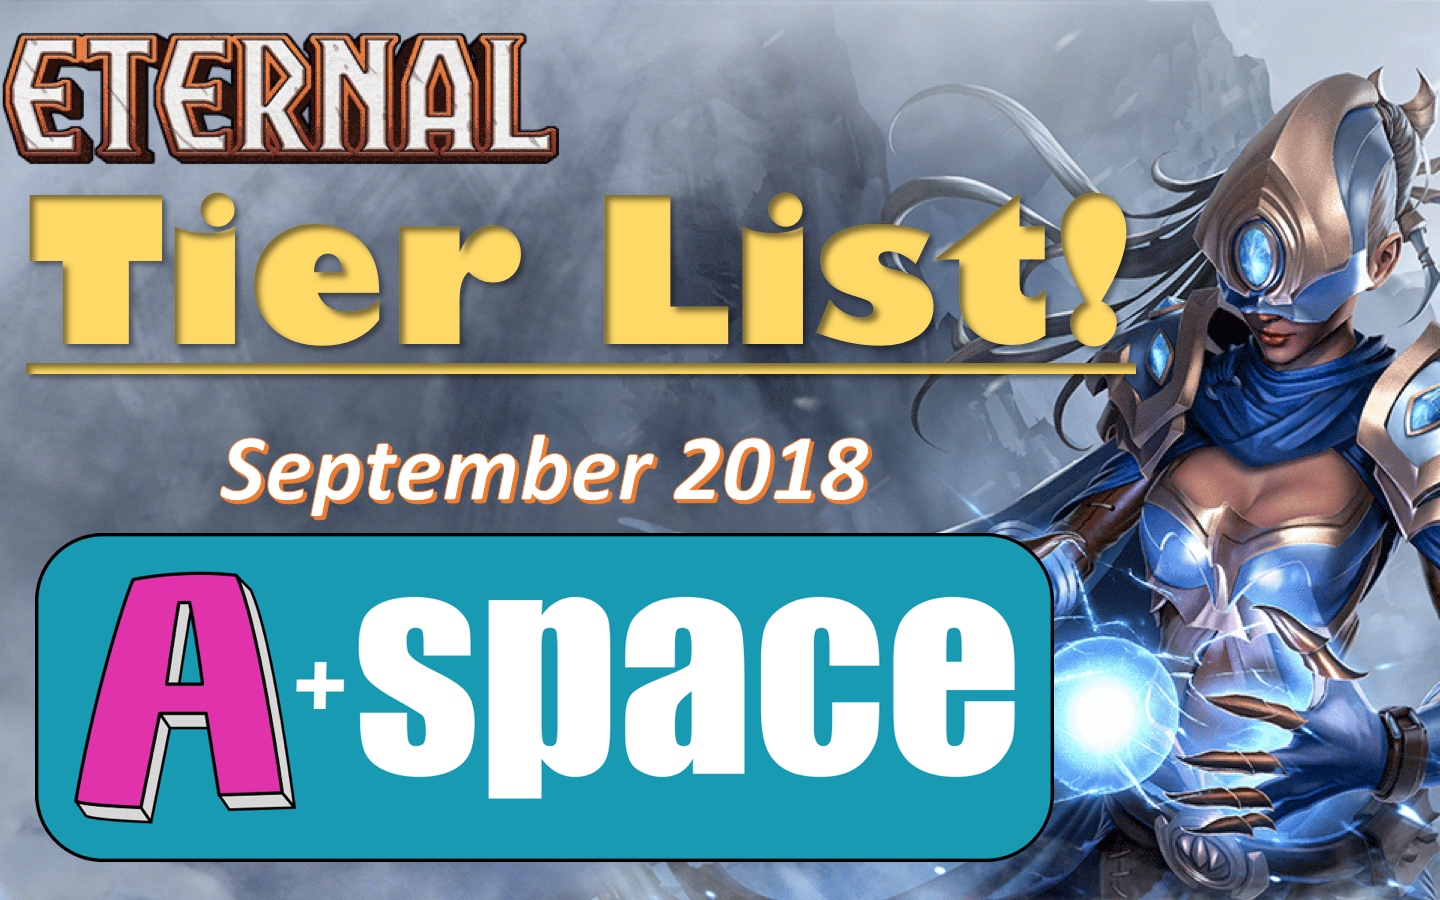 Eternal Tier List - September 2018 - The wait is over.Article/Video - Neon - September 2018